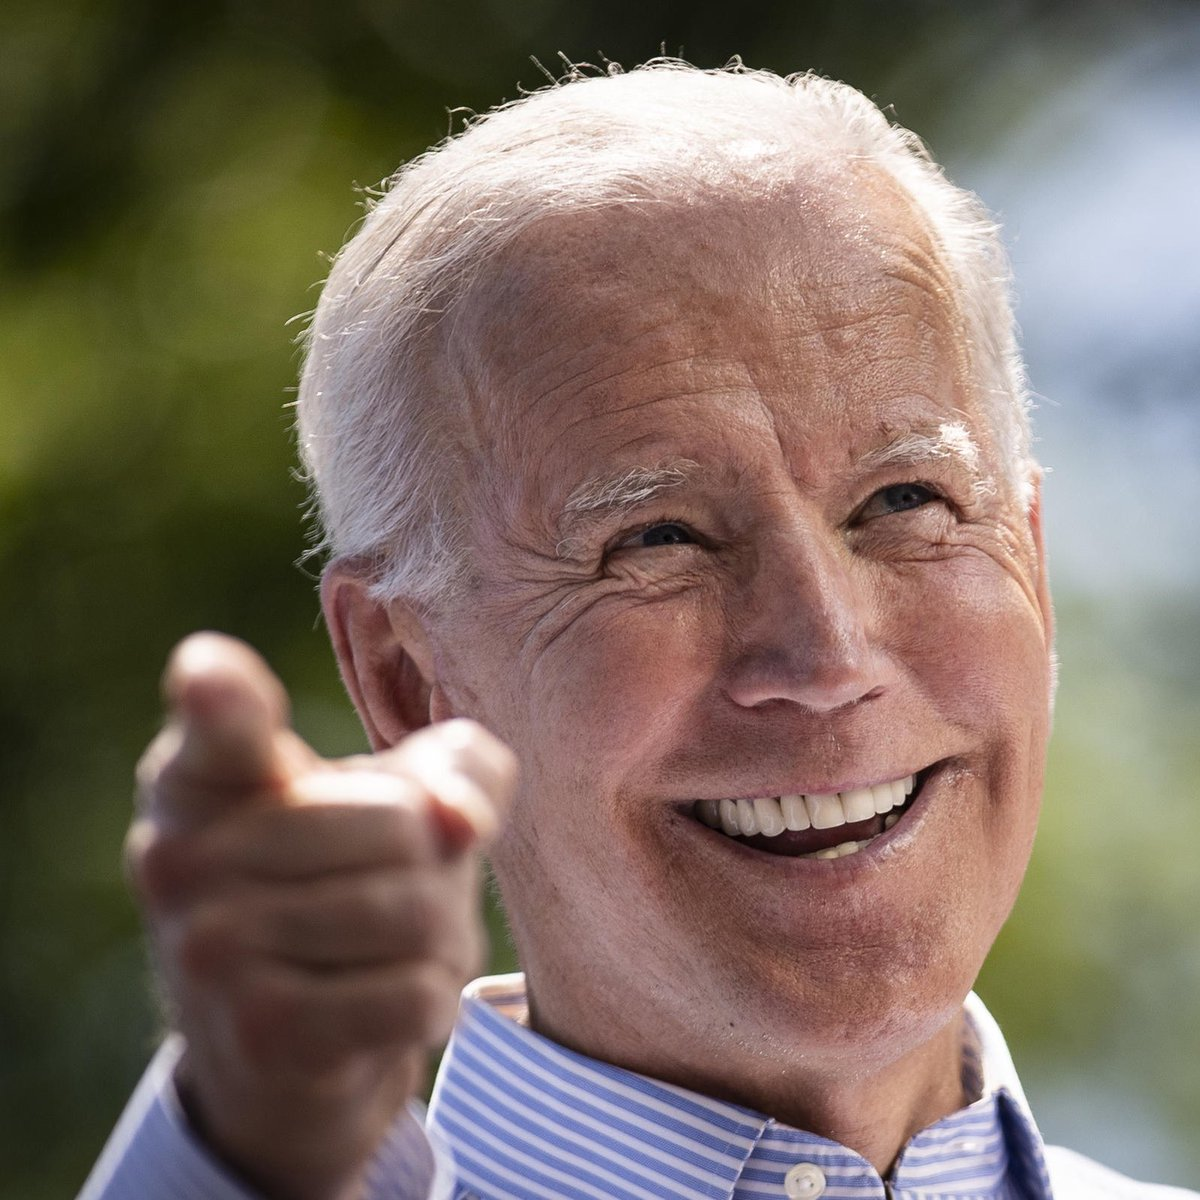 """U can tell a lot From how a finger pointed The right says Listen 2 me I'm infallible The 1 anointed Yet leaves us constantly Exploited The left says hey Lemme help Make a decision Jointed That u want @JoeBiden Appointed """"It is what it is""""?? Nah #BuildBackBetter Way more poignant"""